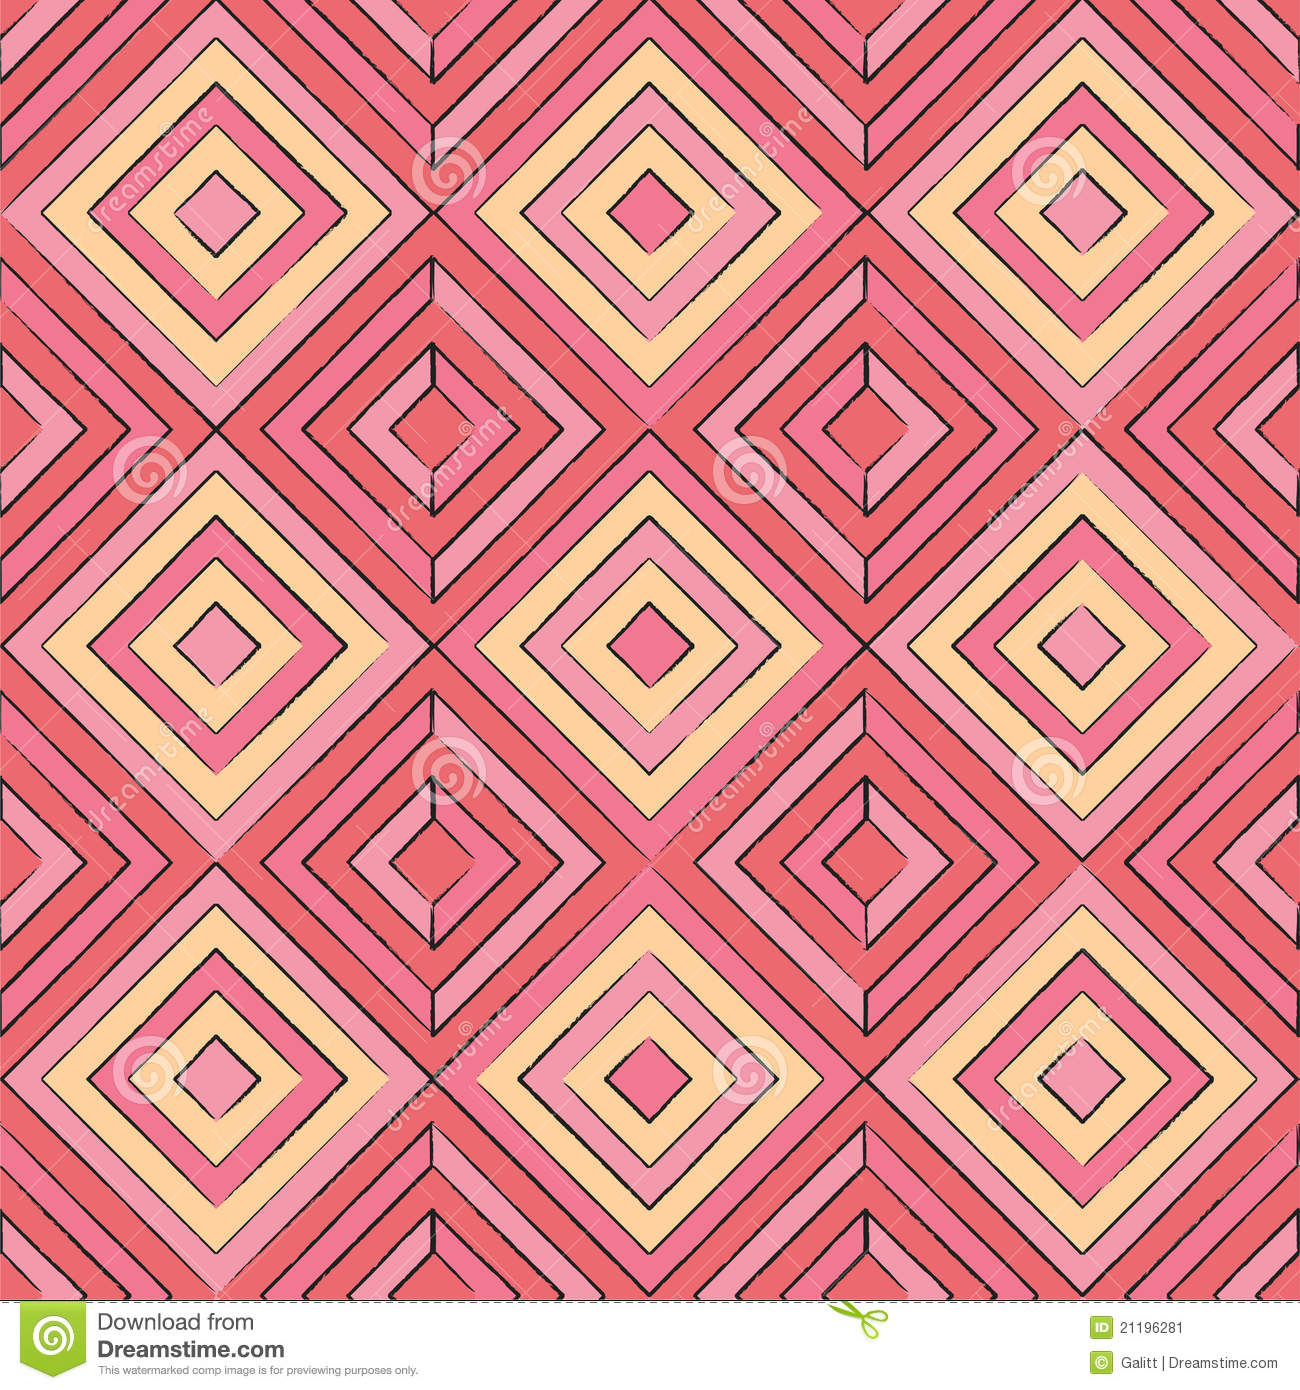 Geometric Art Coloring Pages #6